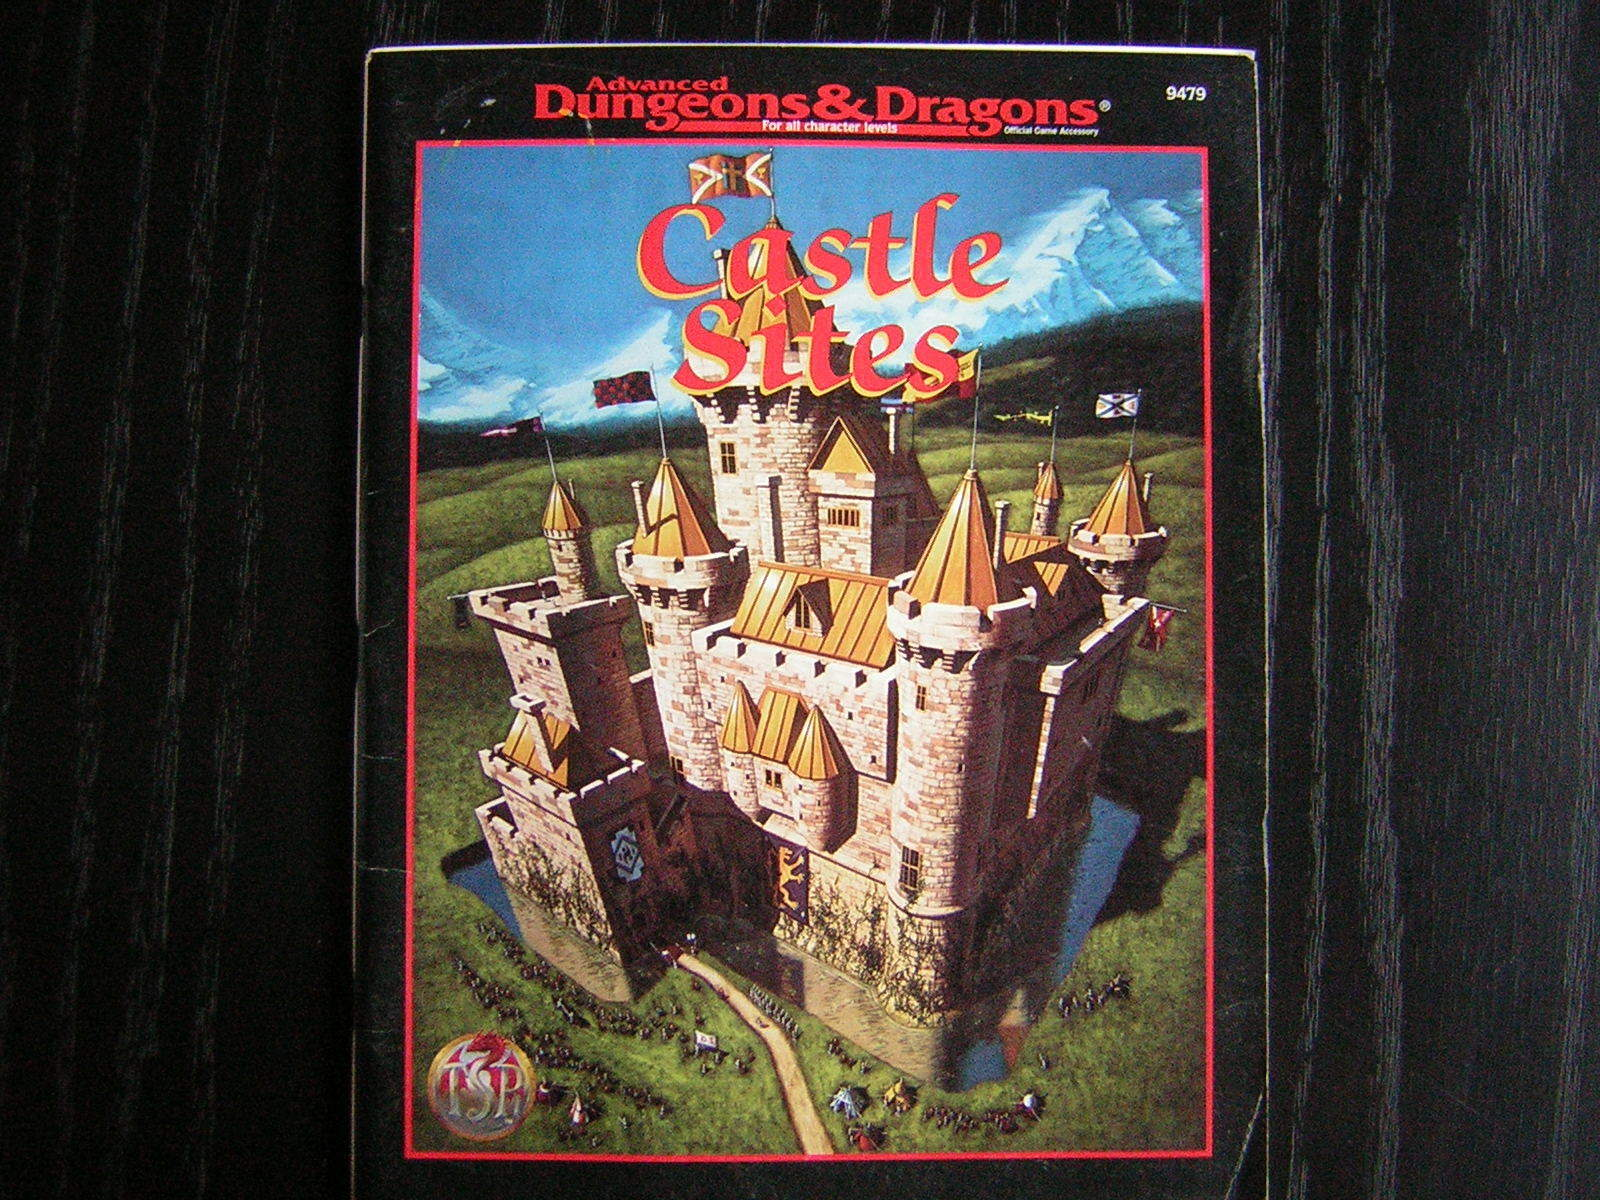 AD&D Dungeons and Dragons 2E 2nd Edition 9479 - Castle Sites, TSR 1995